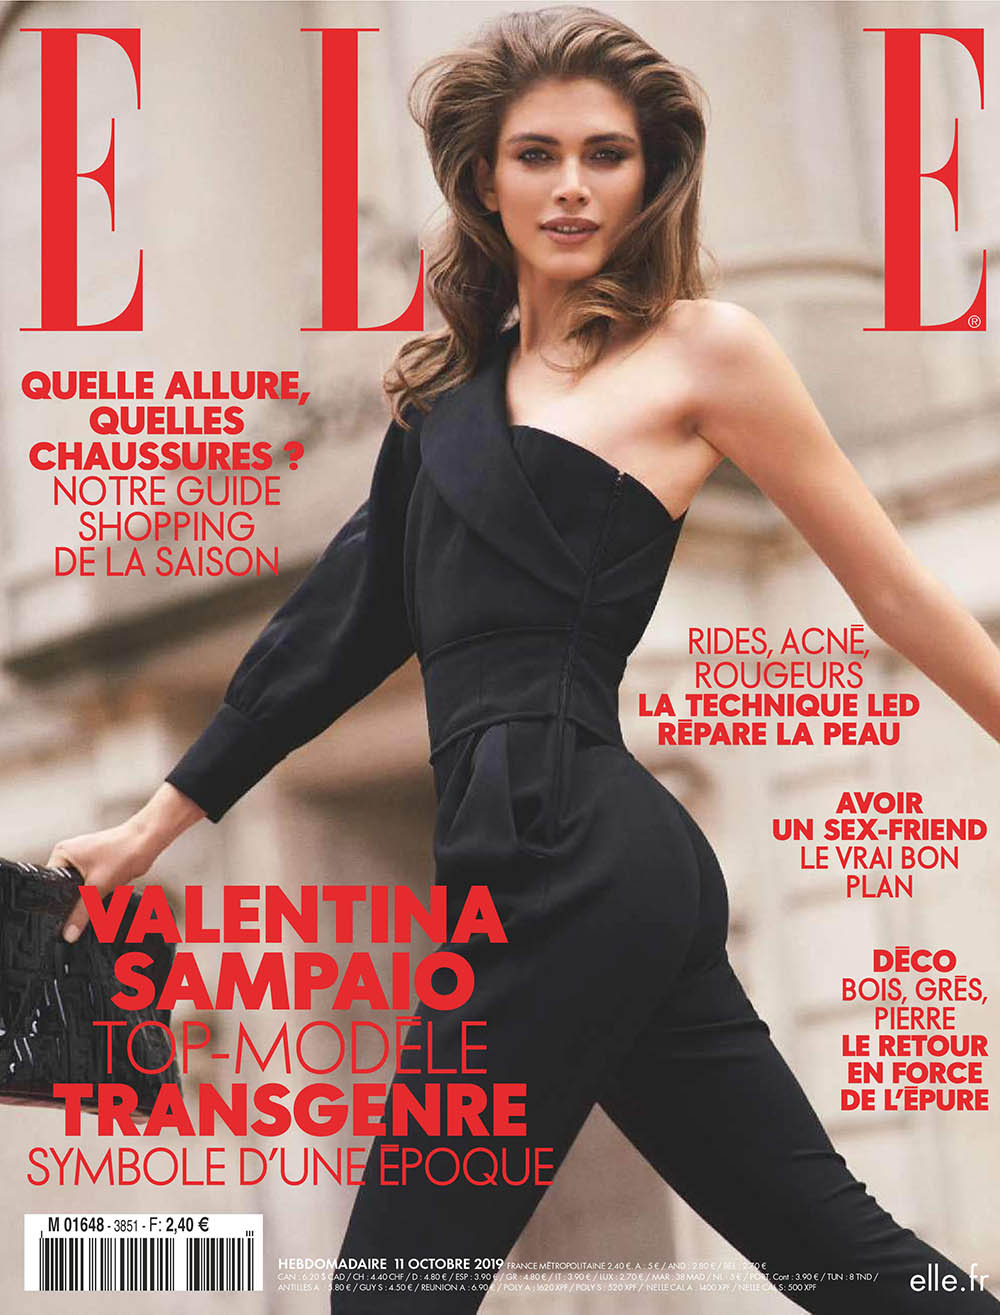 Valentina Sampaio covers Elle France October 11th, 2019 by Sebastian Kim